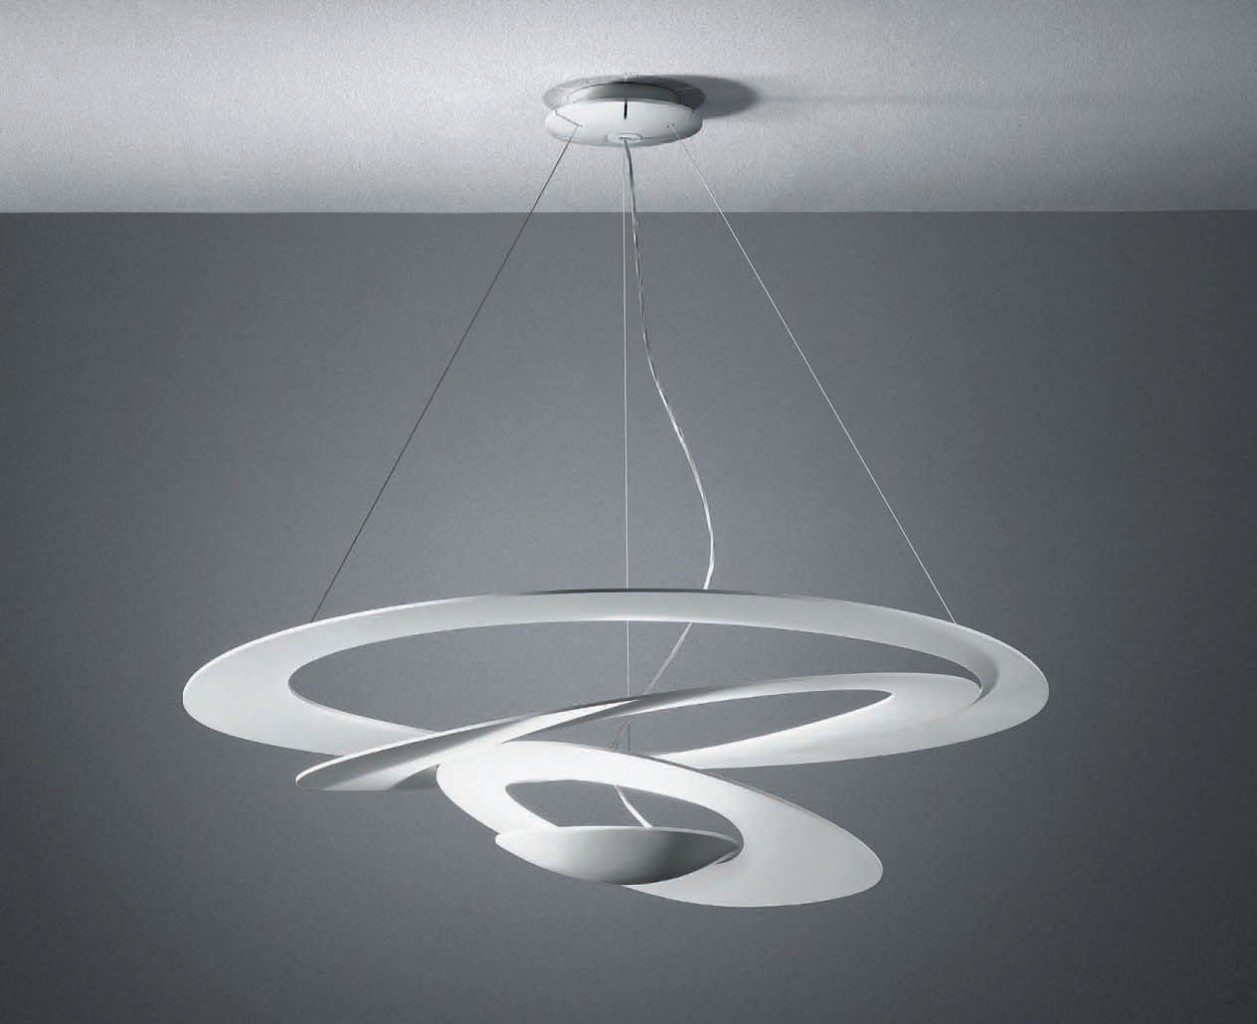 Seaseight design blog light design un mare di lampade for Deckenleuchten design